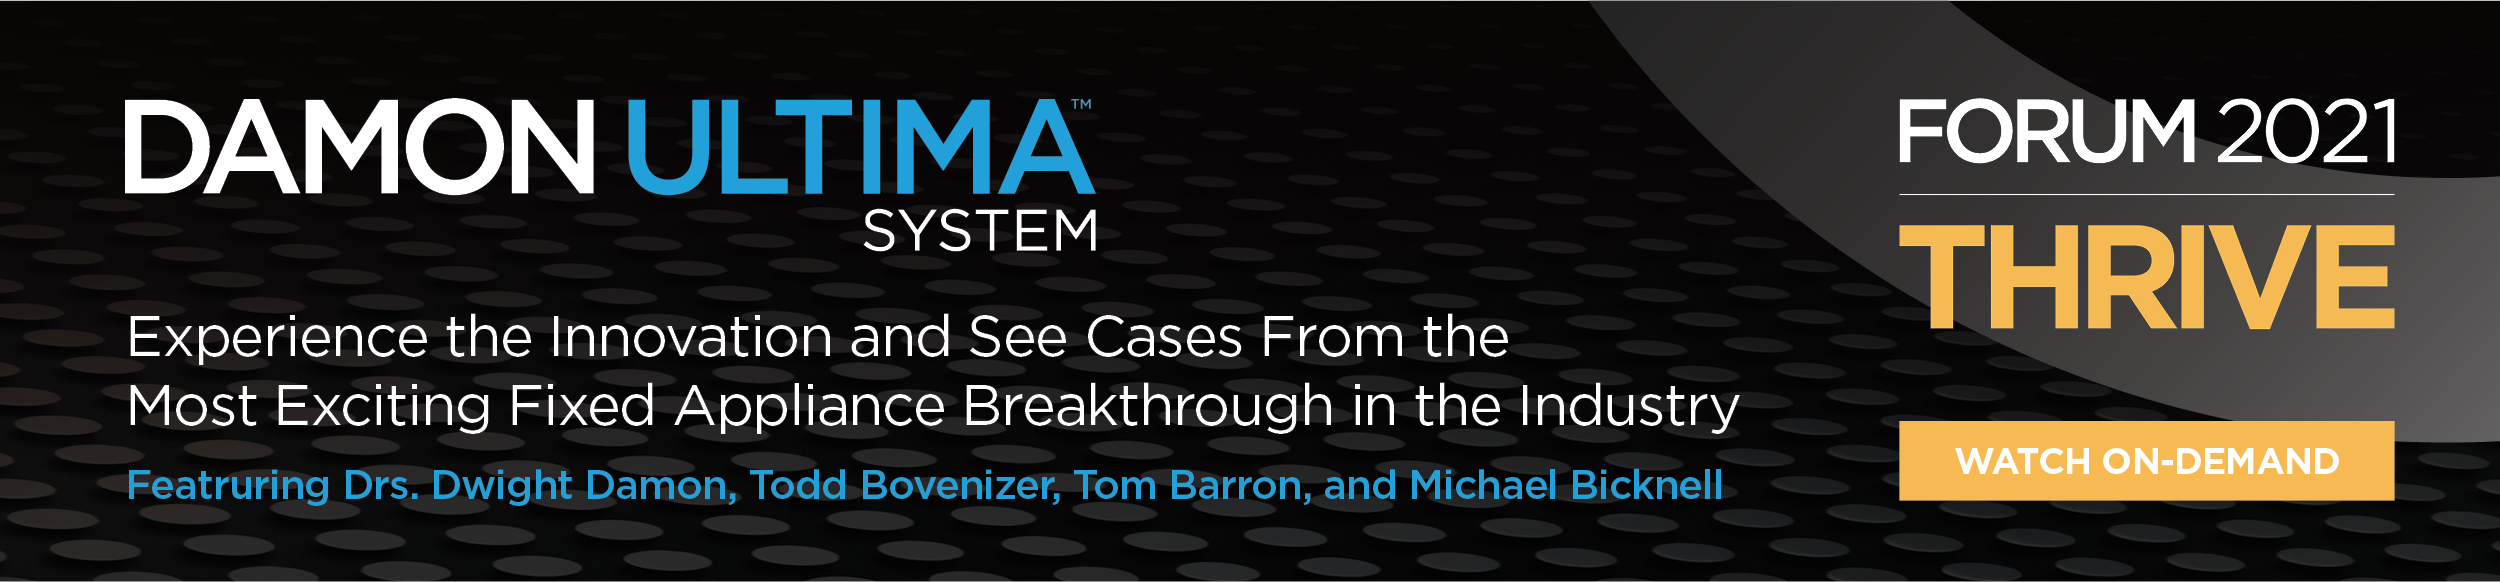 Damon Ultima System | Experience the Innovation and See Cases From the Most Exciting Fixed Appliance Breakthrough in the Industry | FORUM 2021 THRIVE | Watch On-Demand